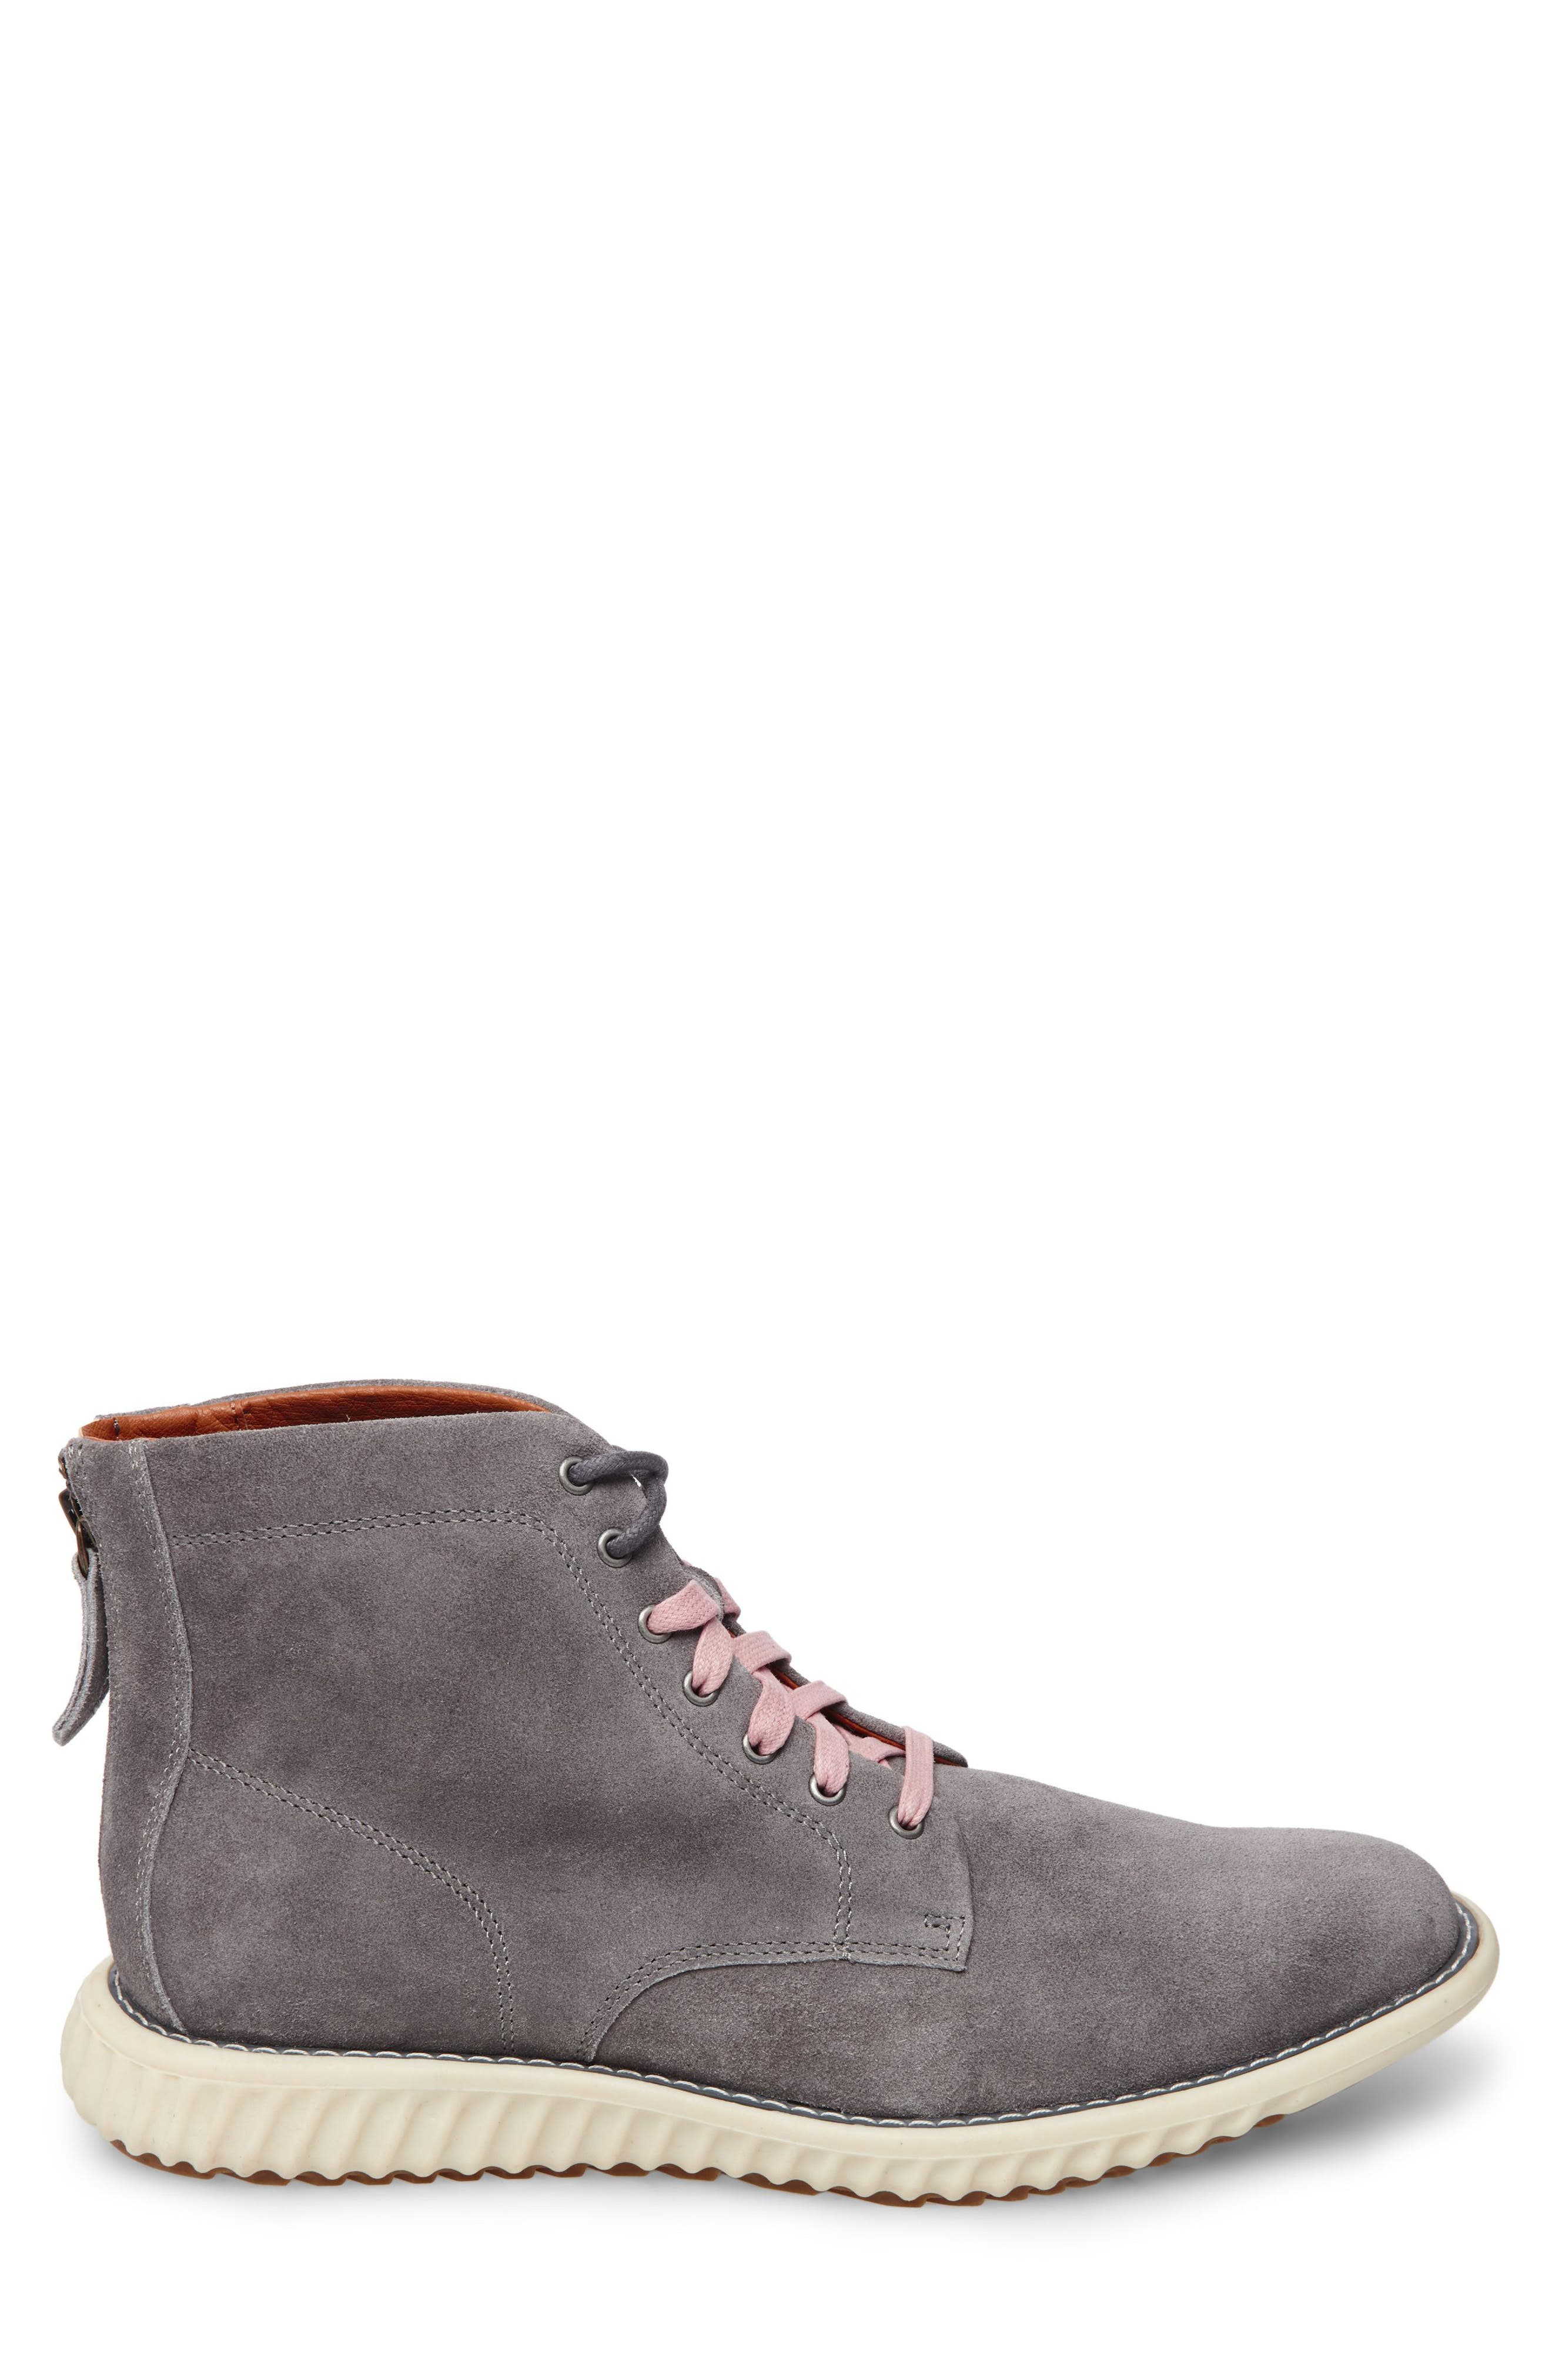 Verner Suede Plain Toe Boot,                             Alternate thumbnail 3, color,                             Dark Grey Suede